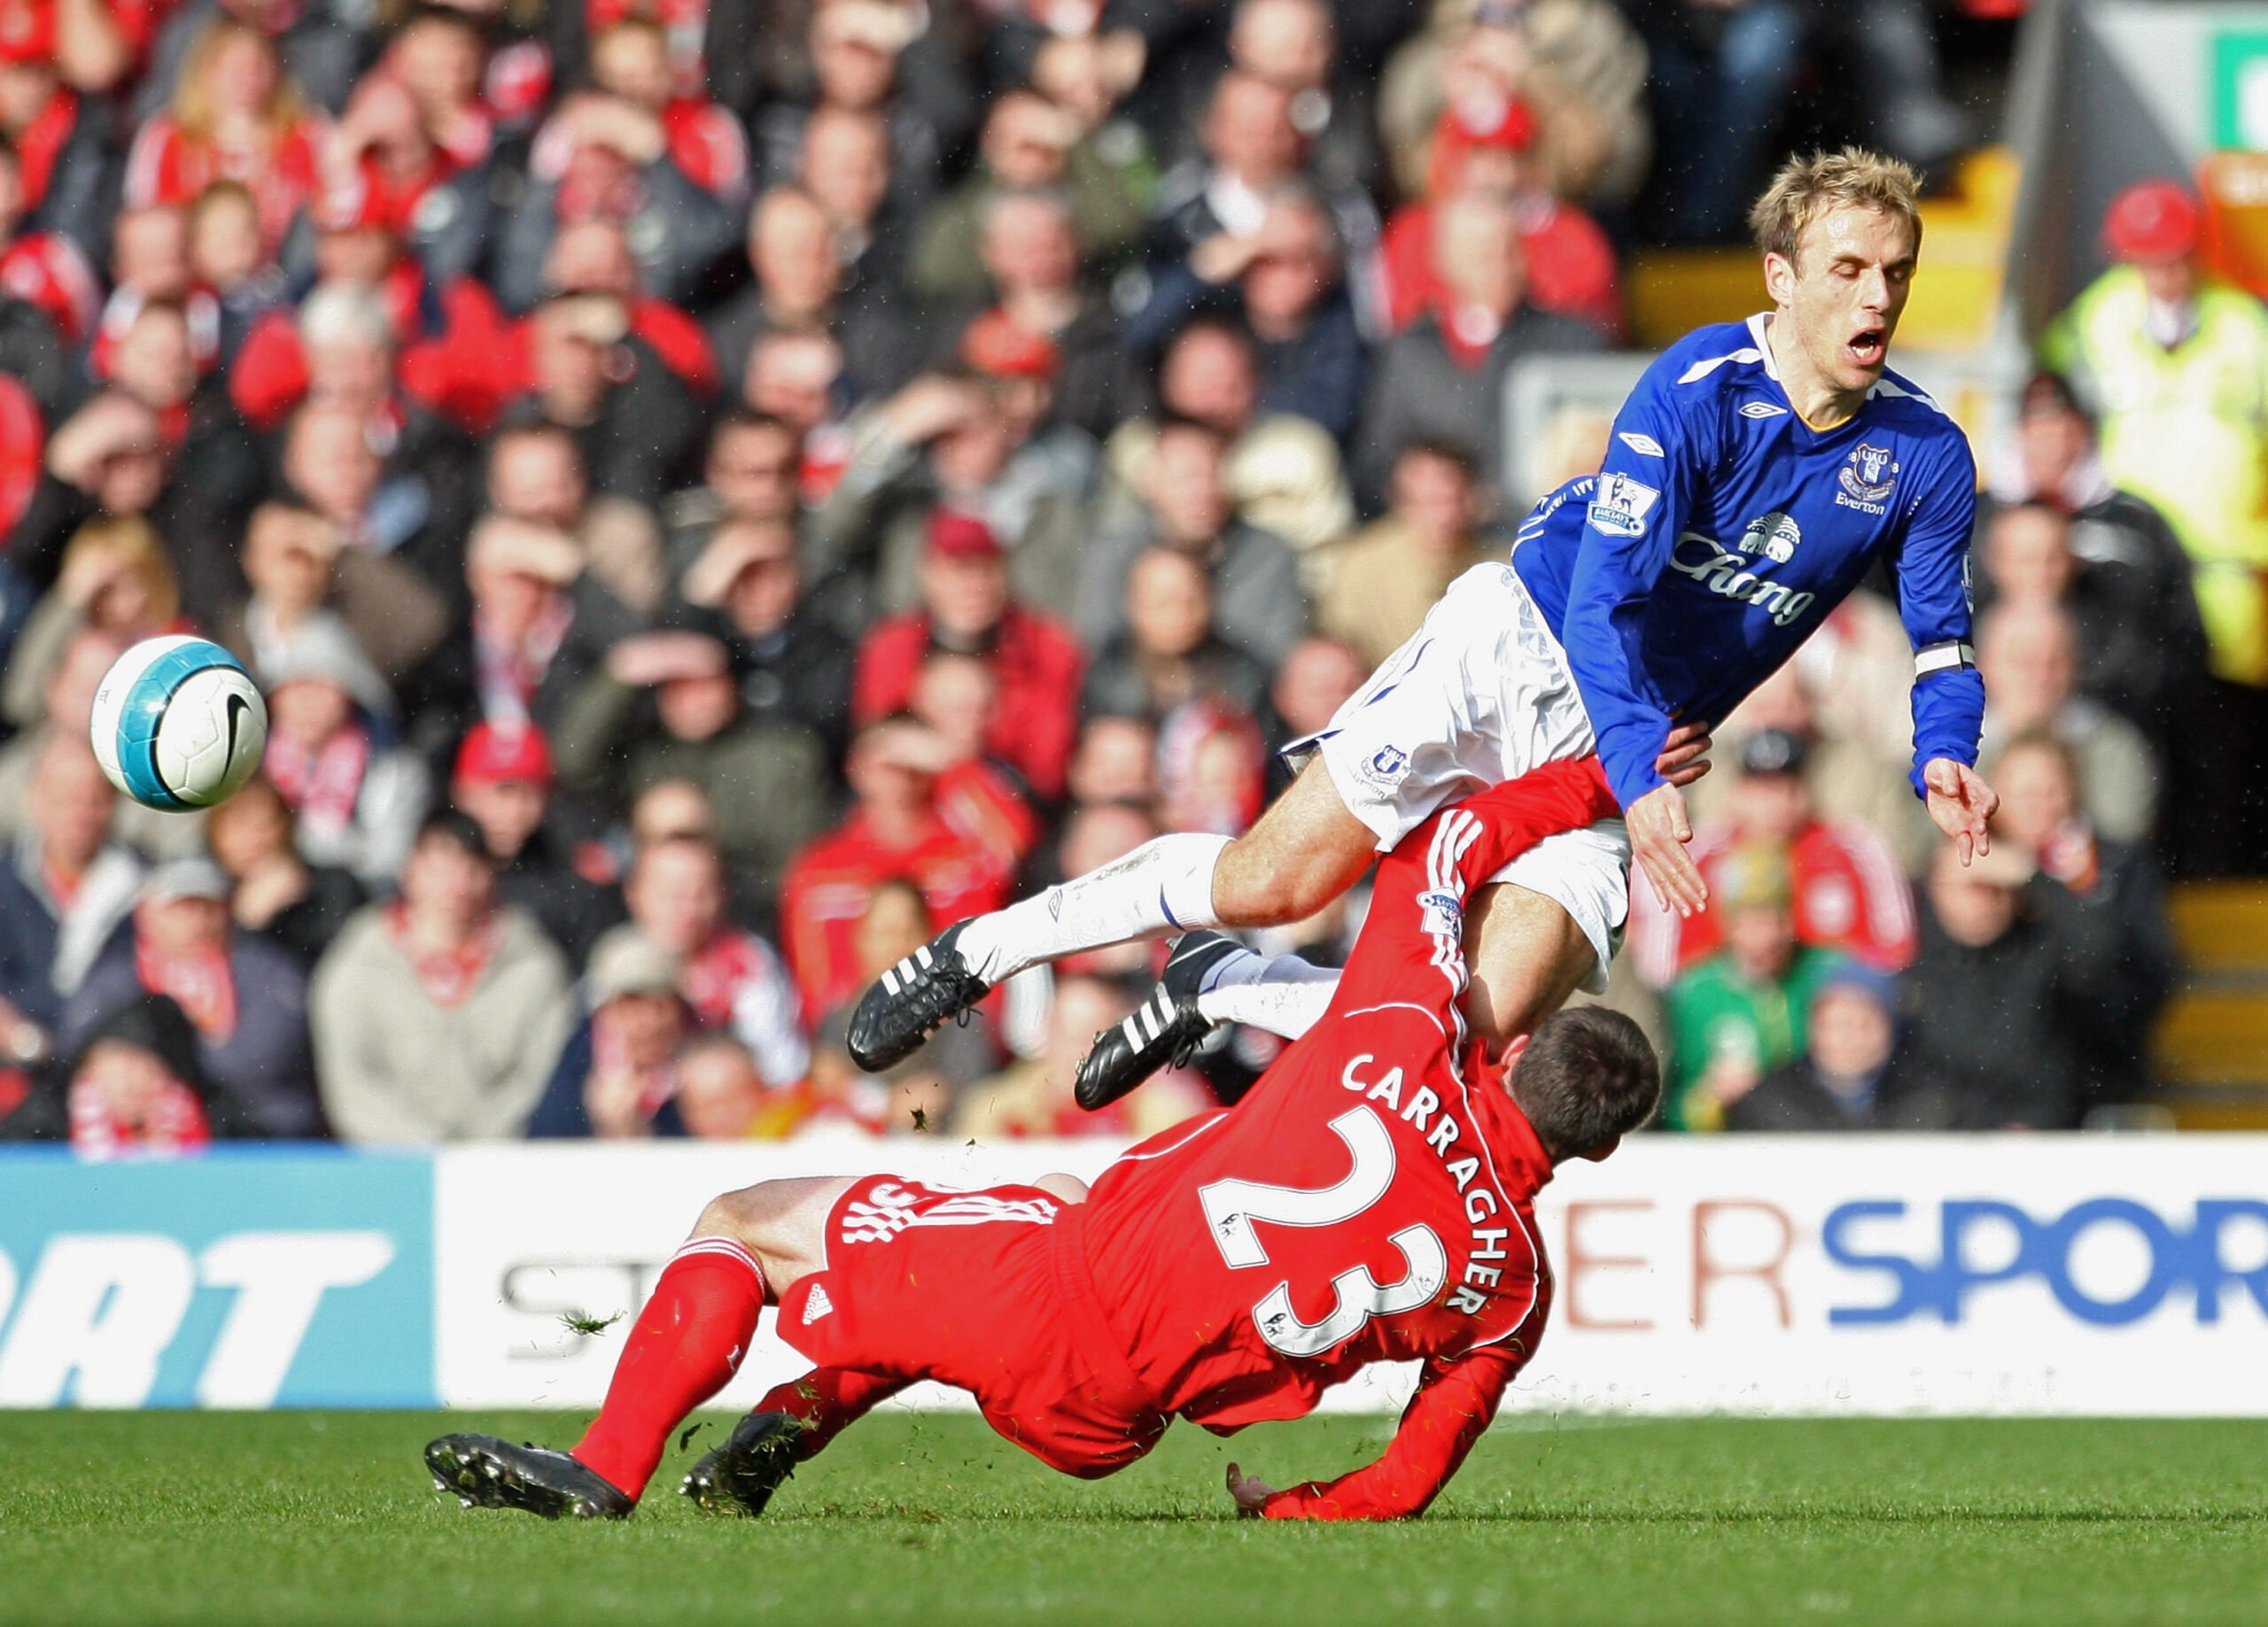 neville_carragher_30_marzo_2008_liga_laurence_griffith